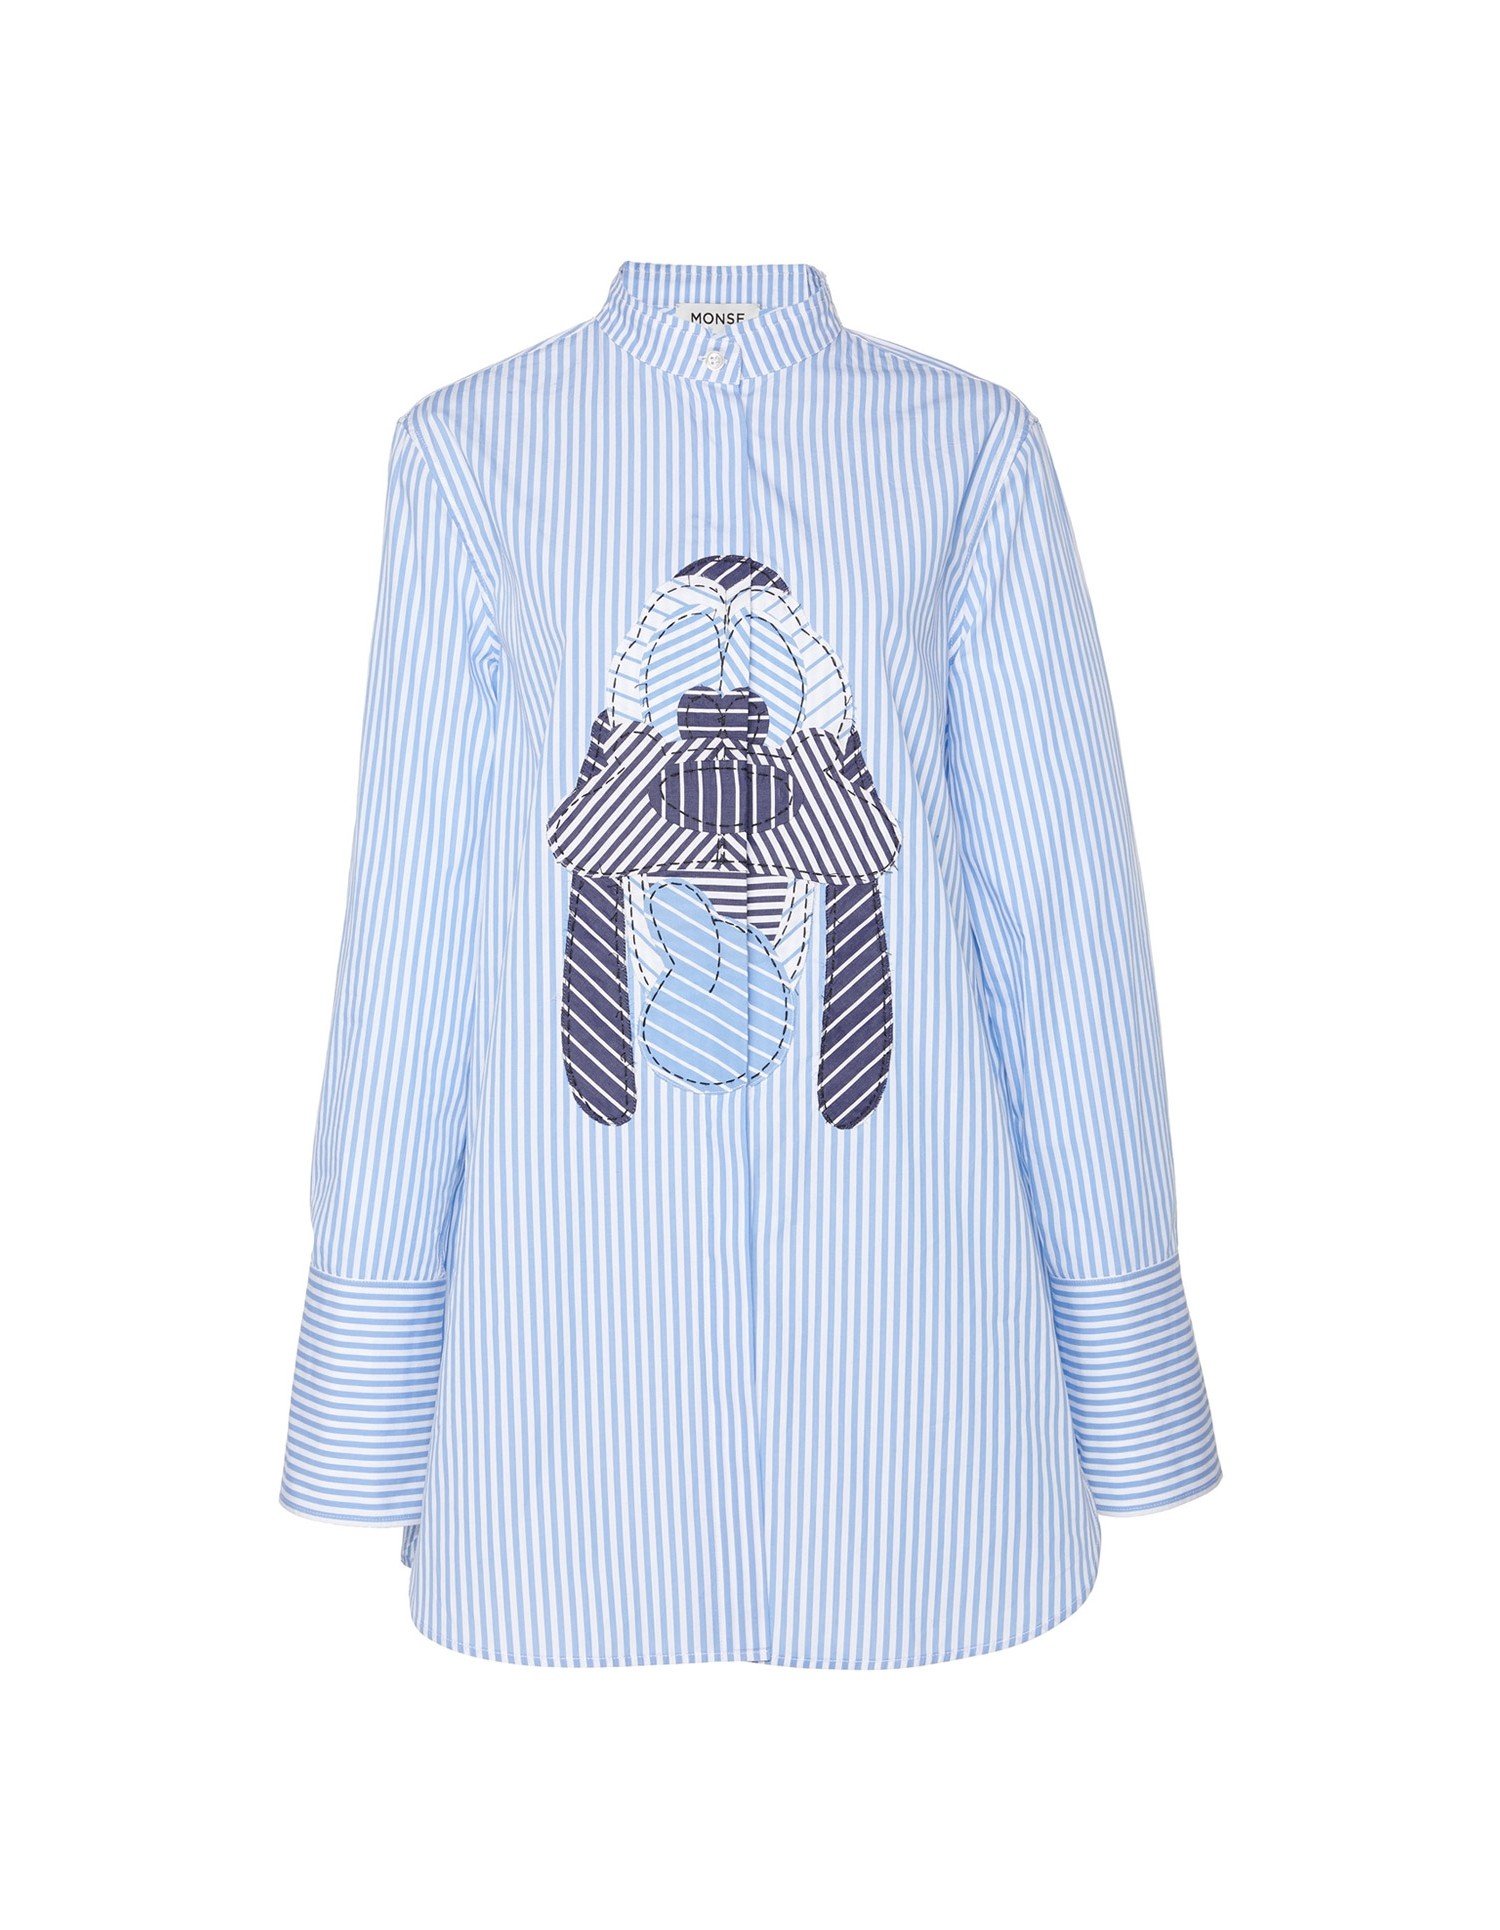 MONSE Disney Pluto Striped Shirt Flat